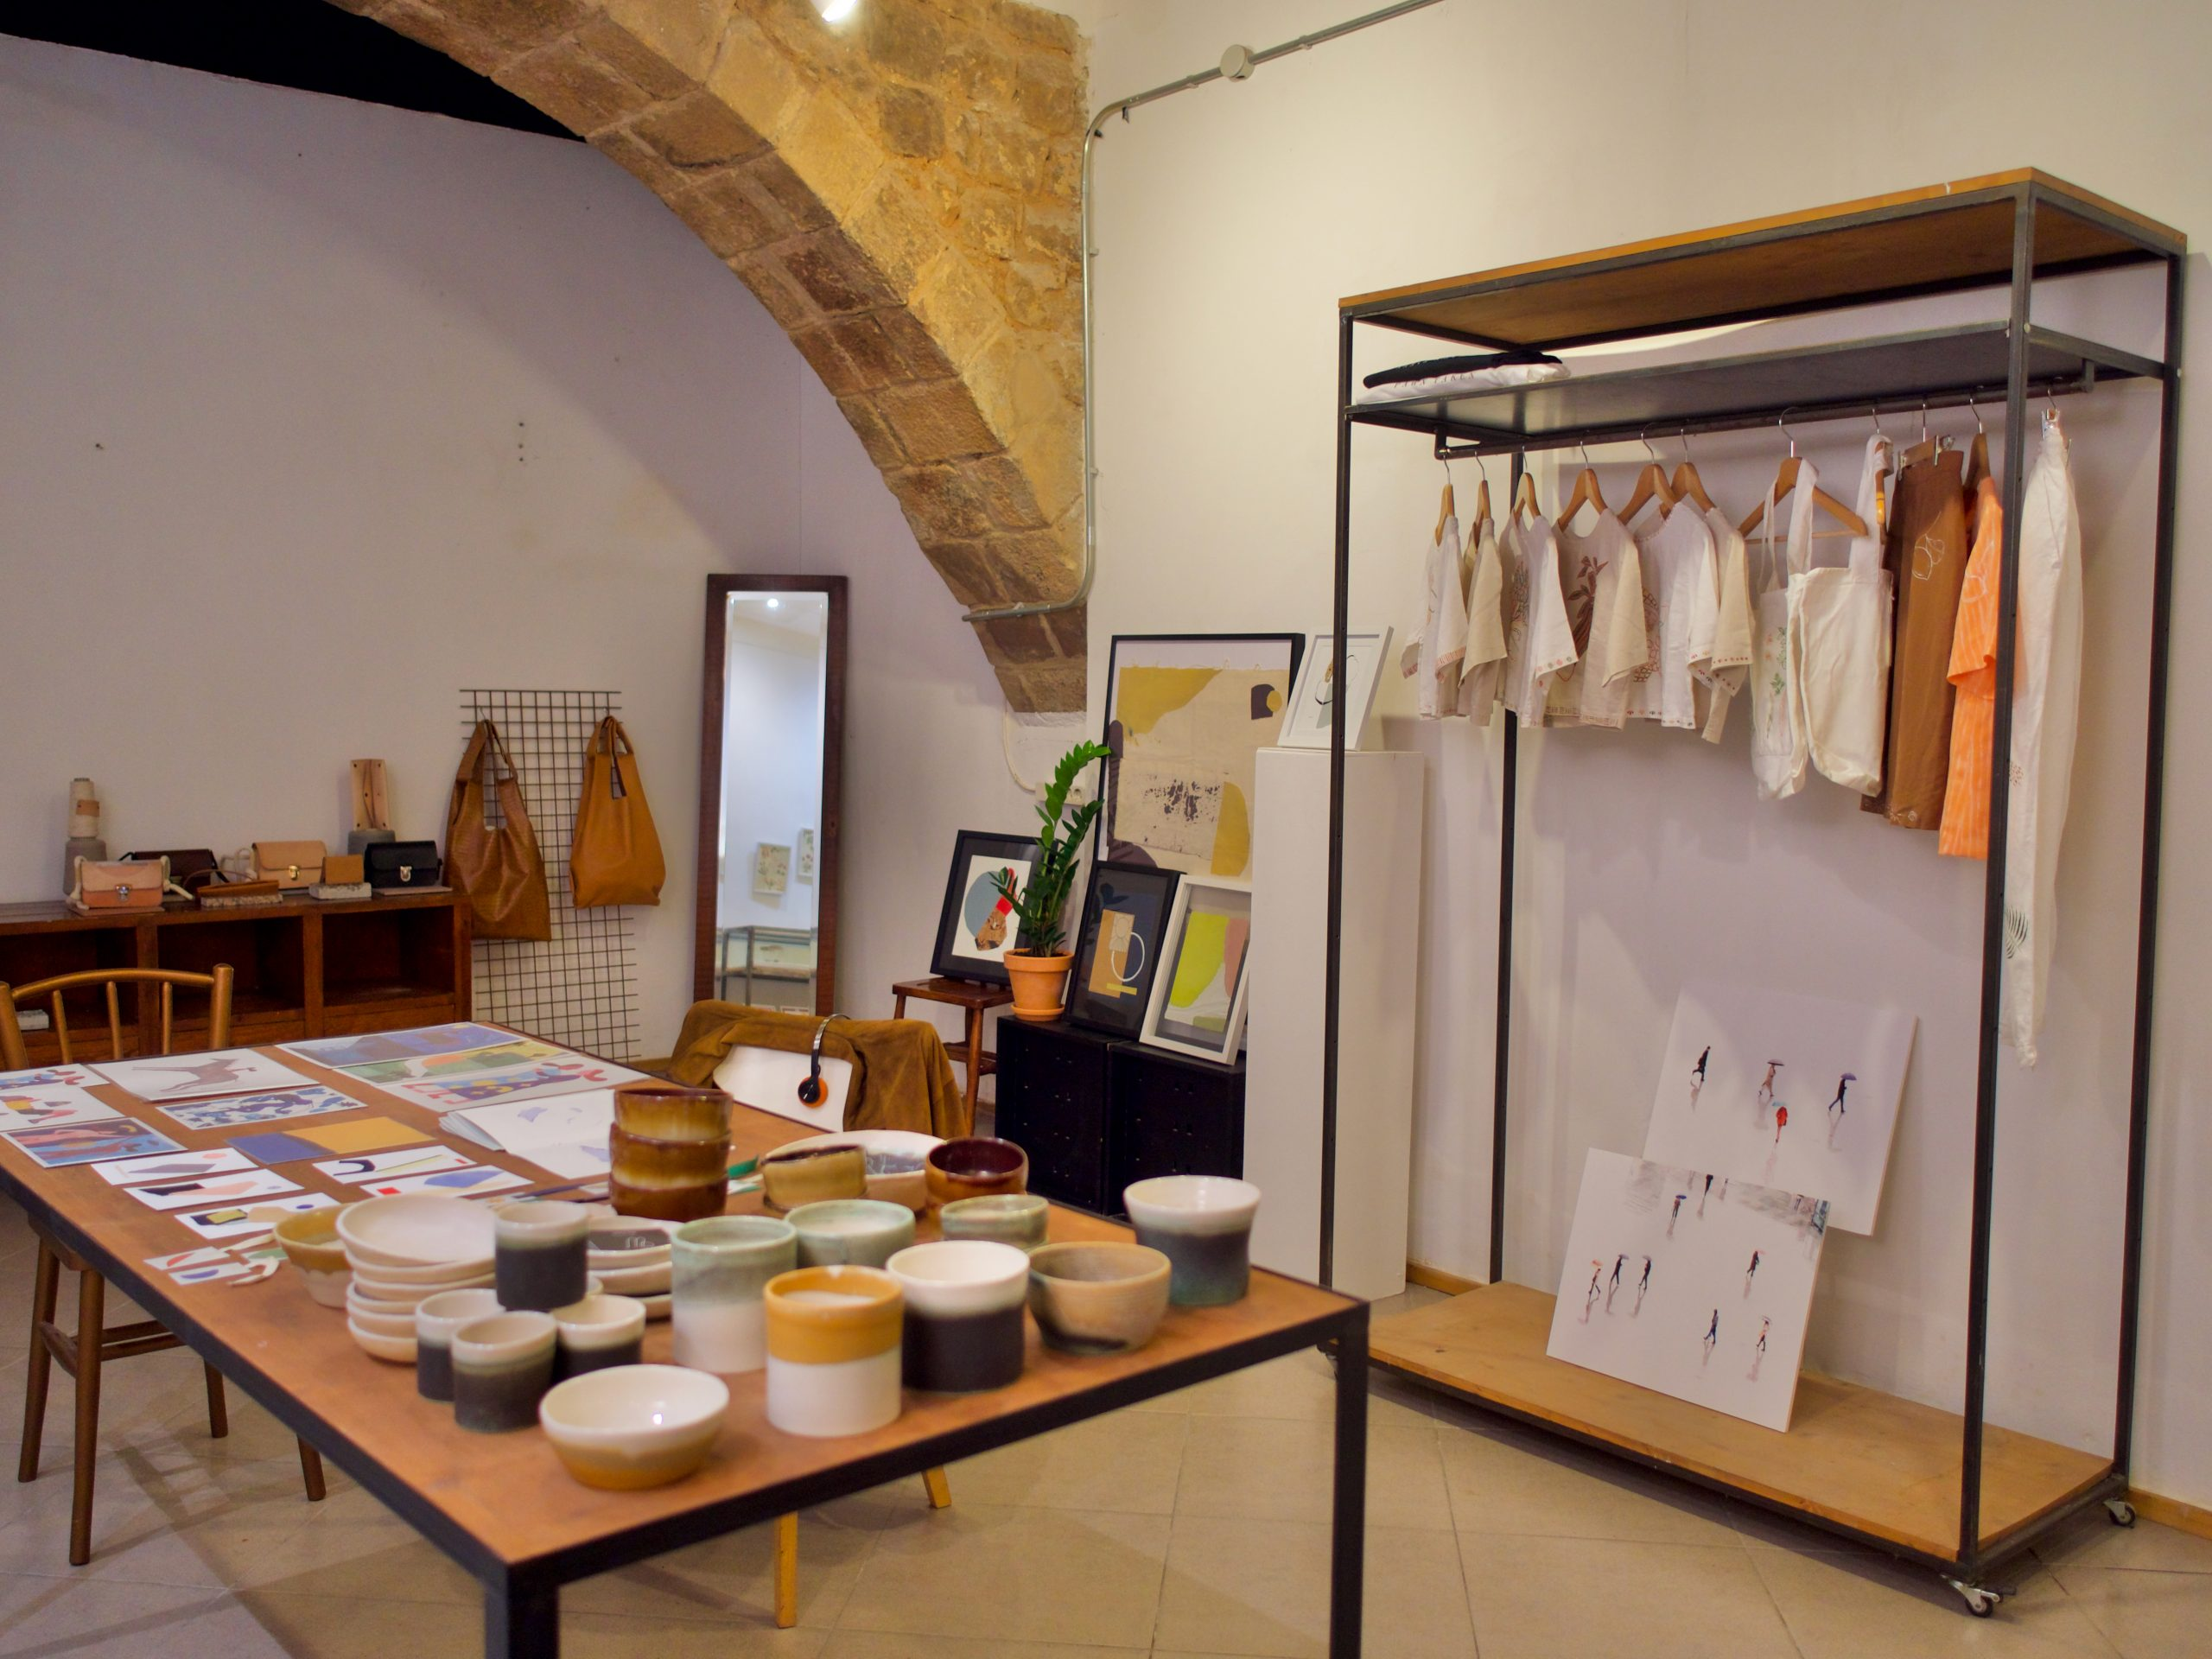 paam store interior #paam_project #paam #barcelonaartgallery